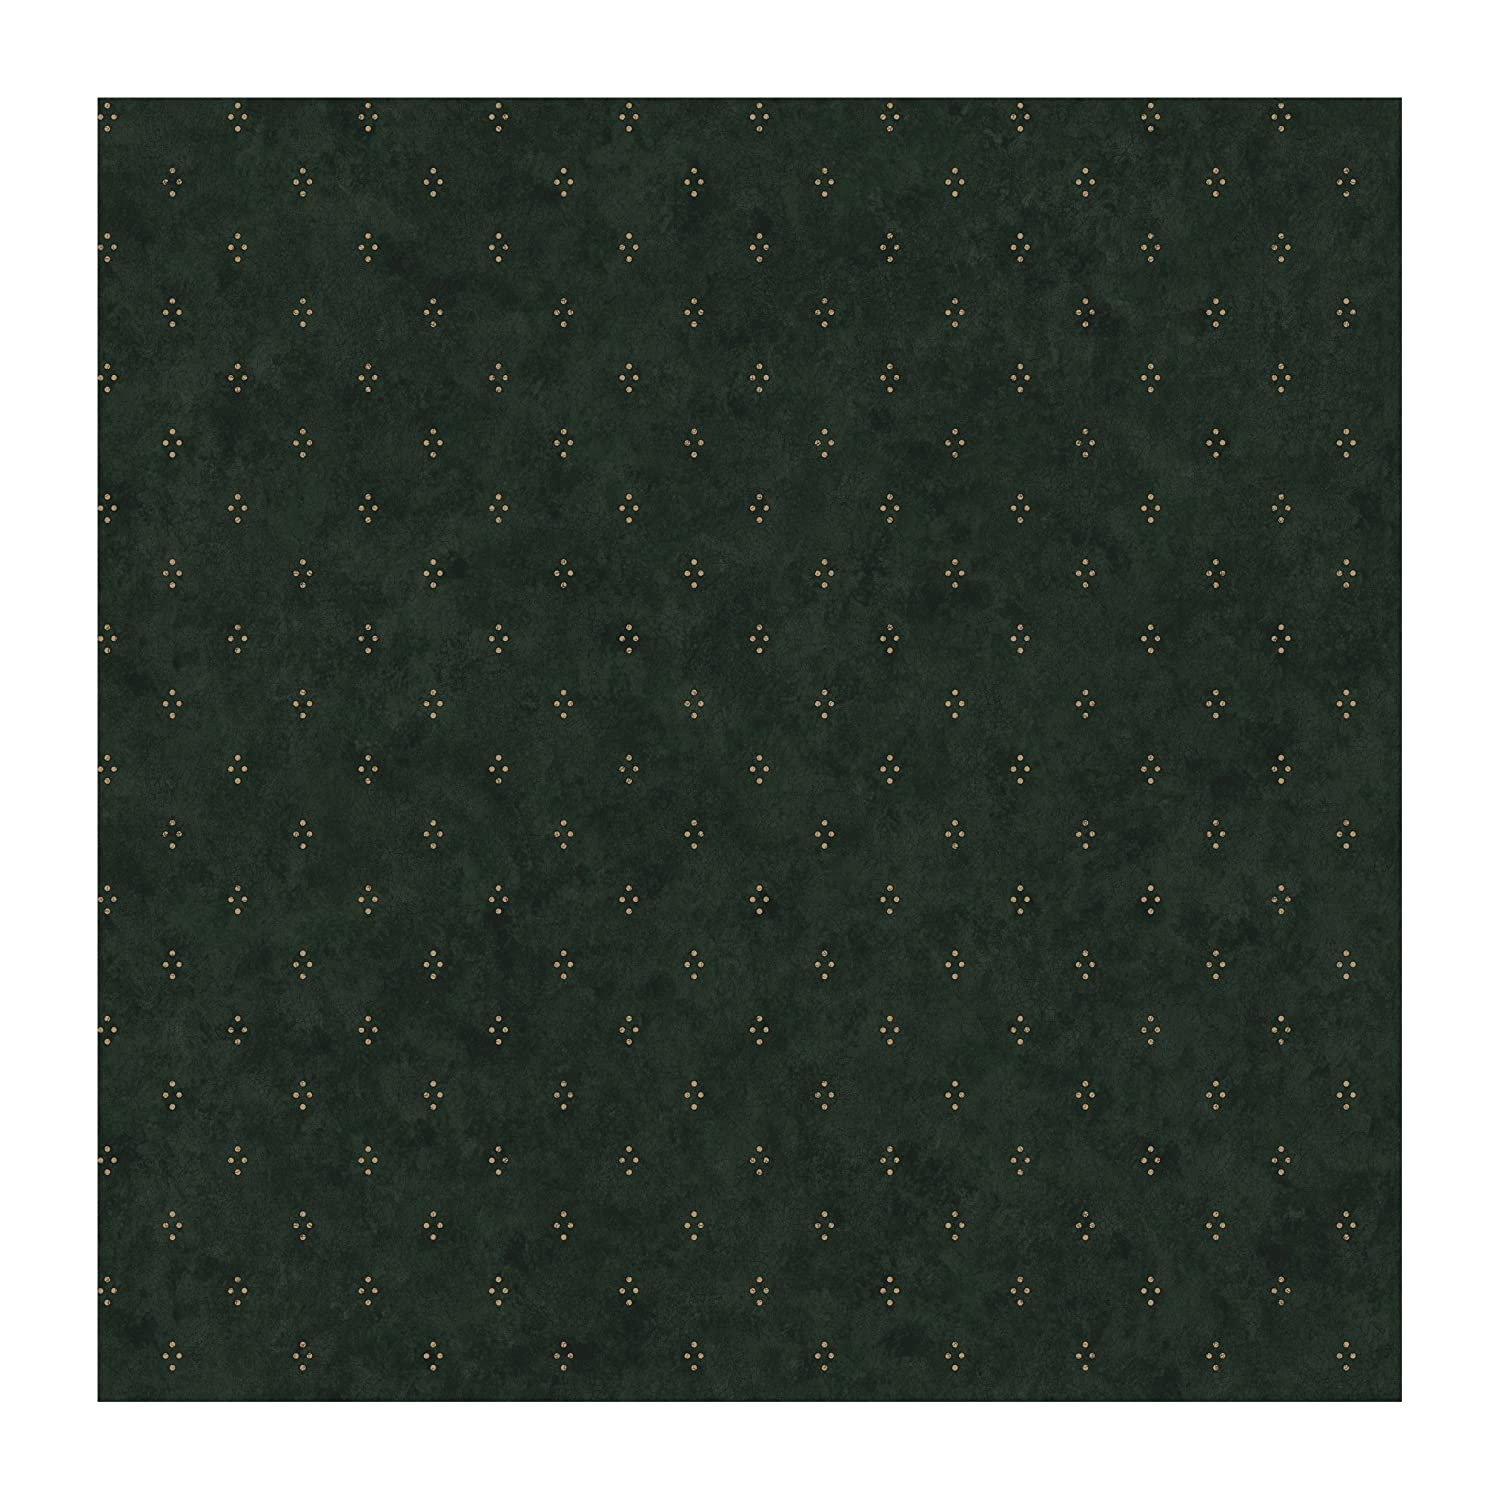 York Wallcoverings Best Of Country JN1718 Crackle Dot Wallpaper, Forest Green